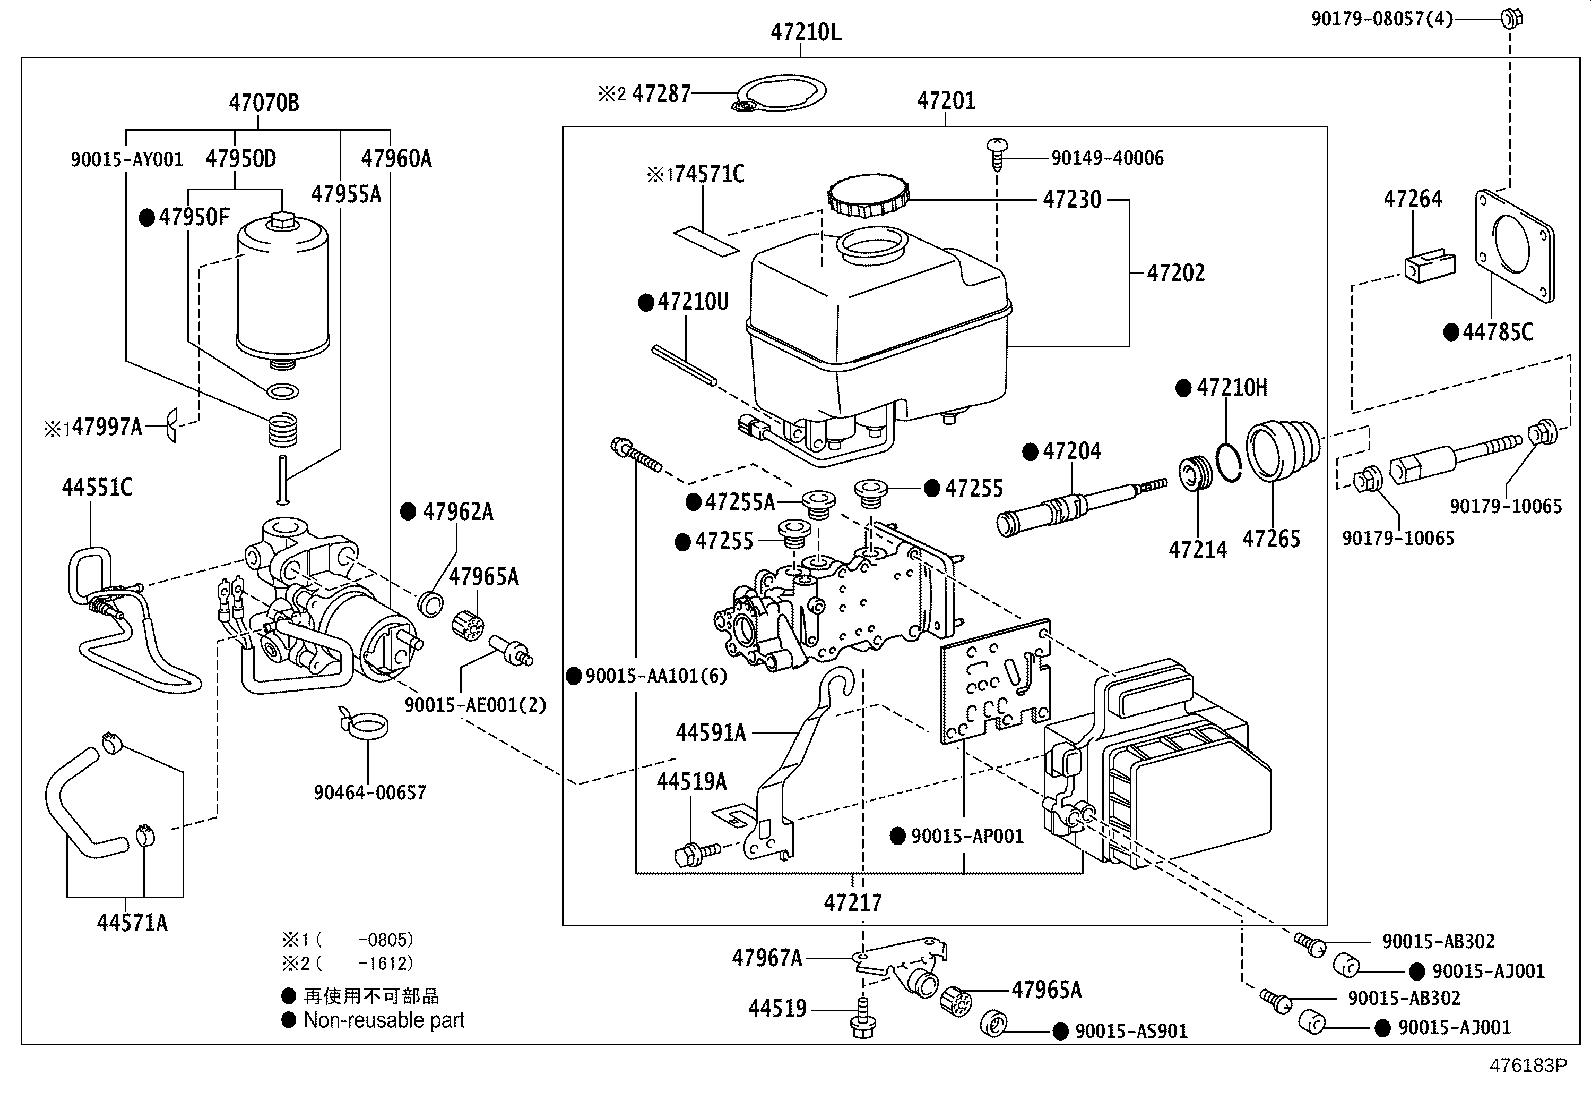 4705060180 - Brake booster assembly, with master cylinder ...